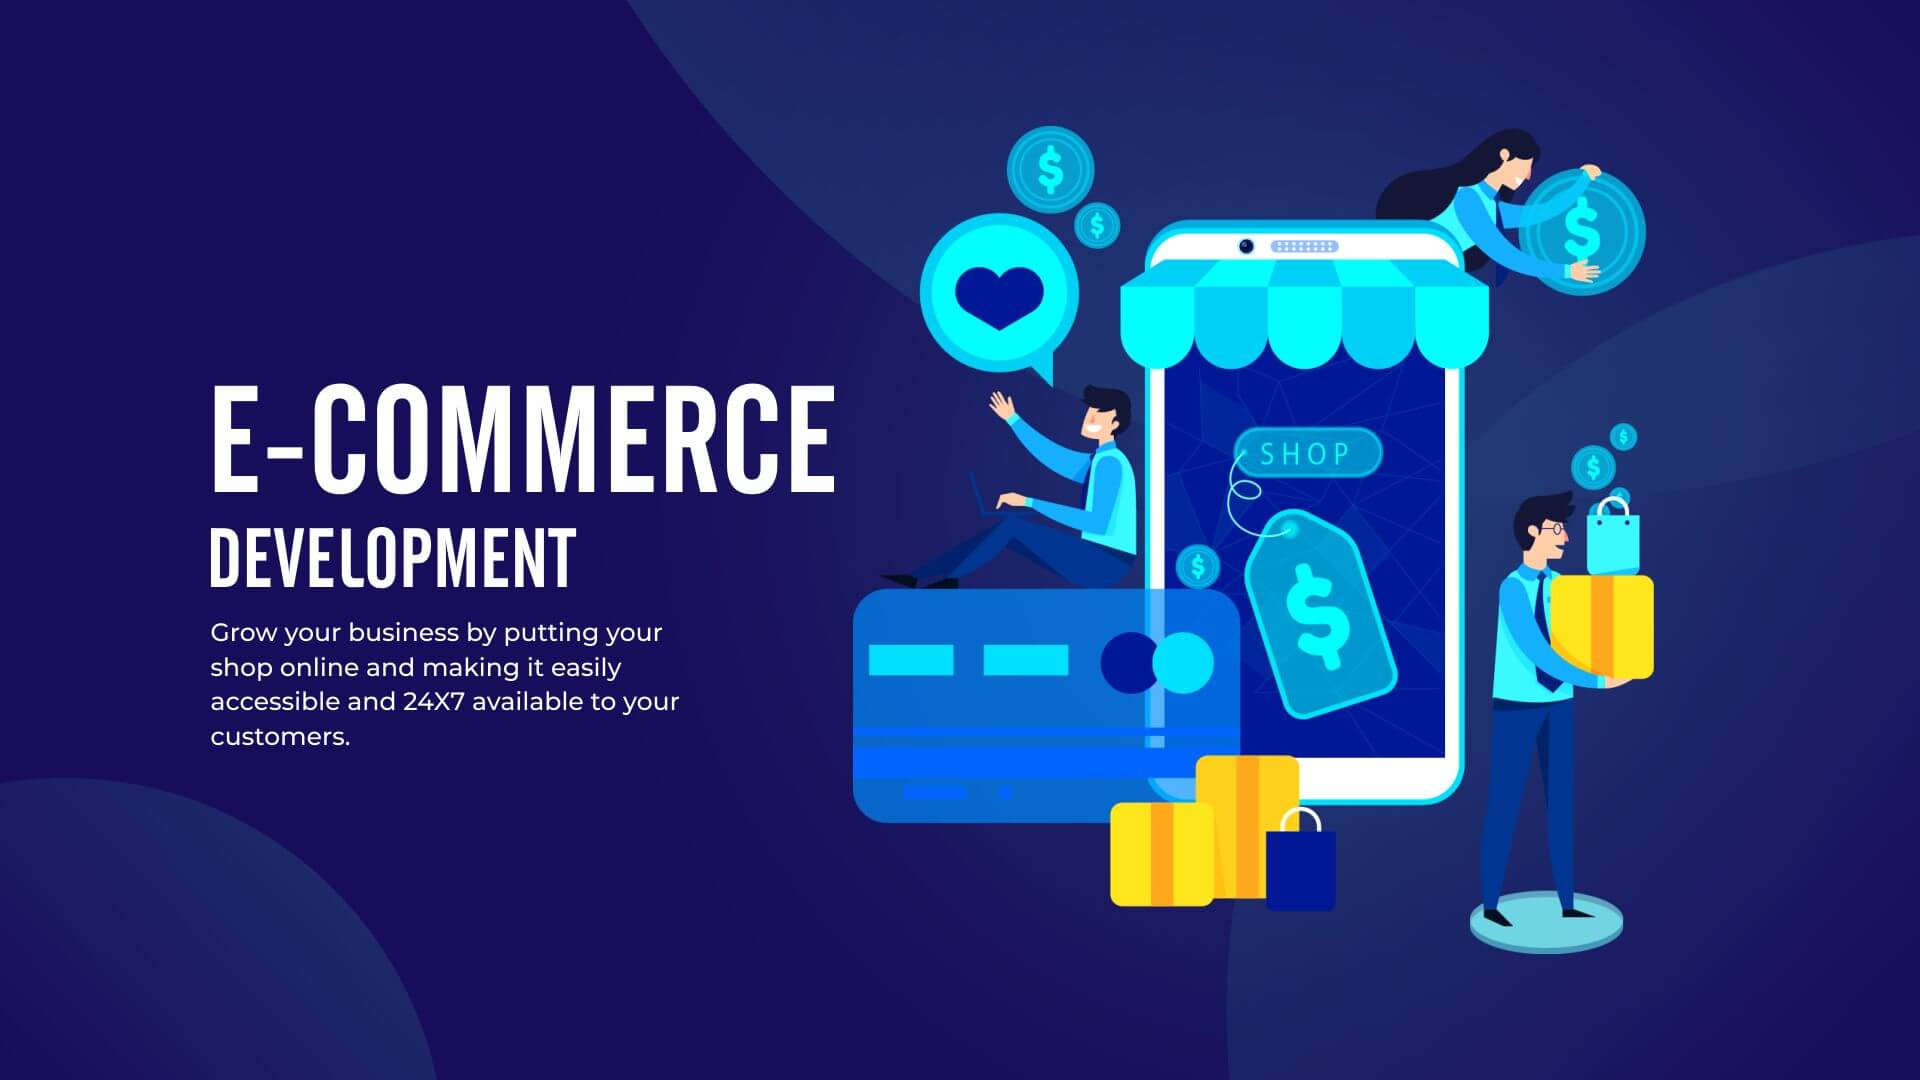 Ecommerce Website Development -How to Make a Shop that Sells